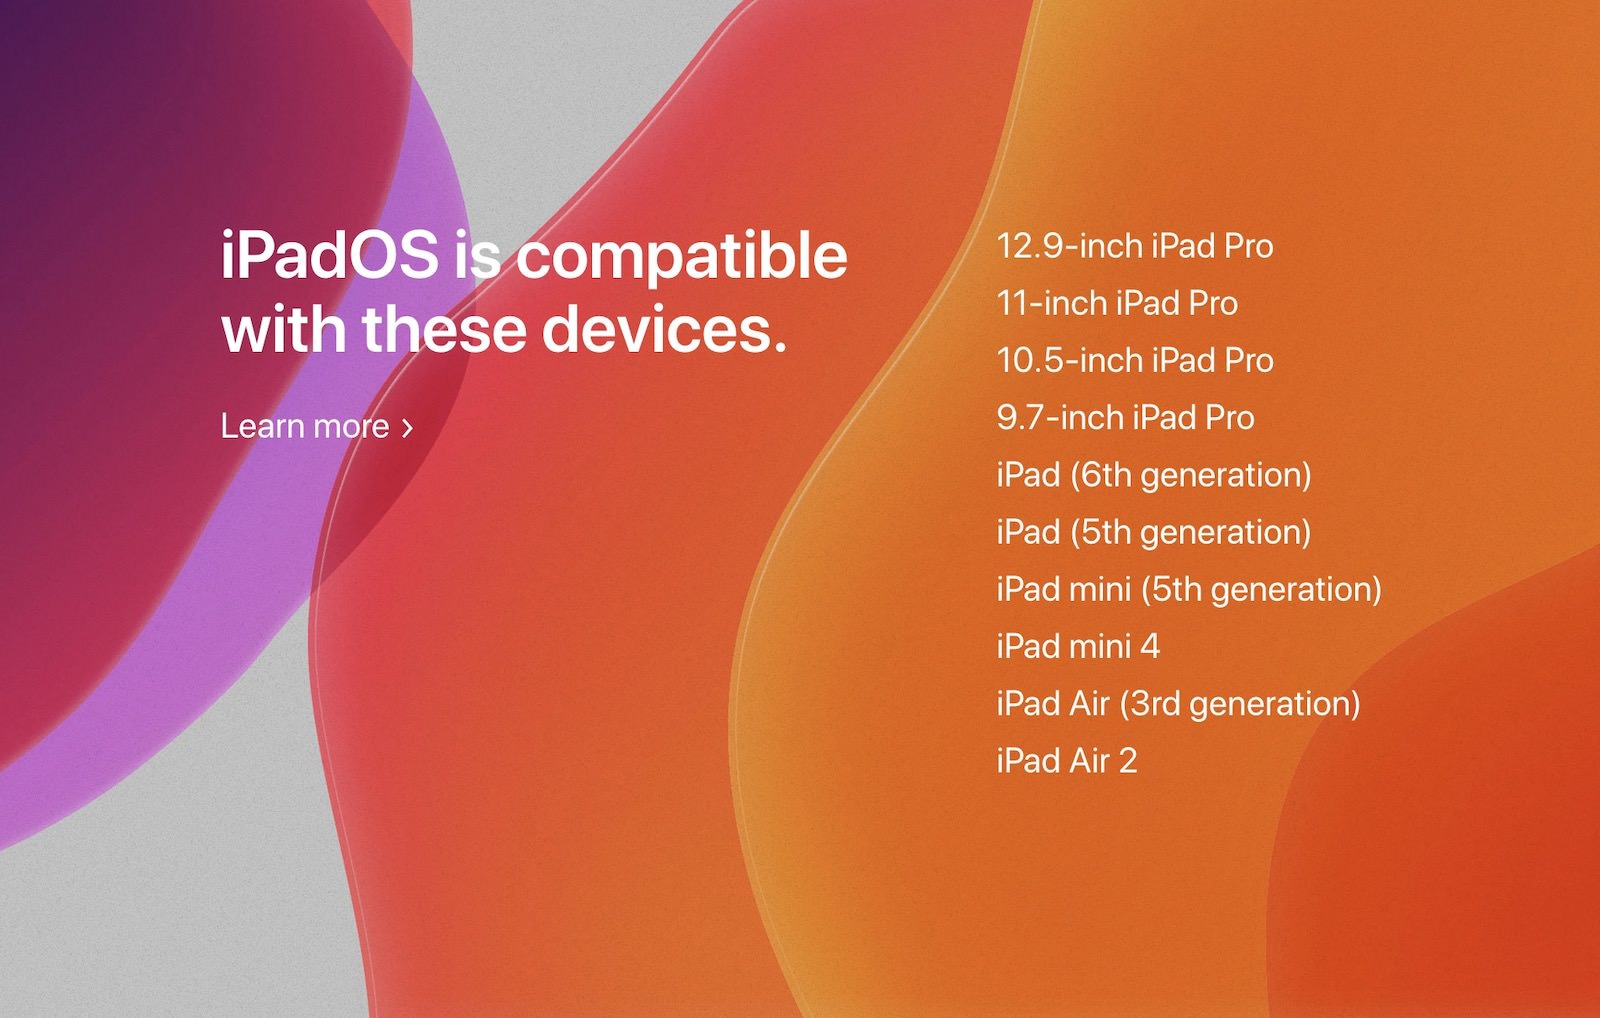 IpadOS compatible devices